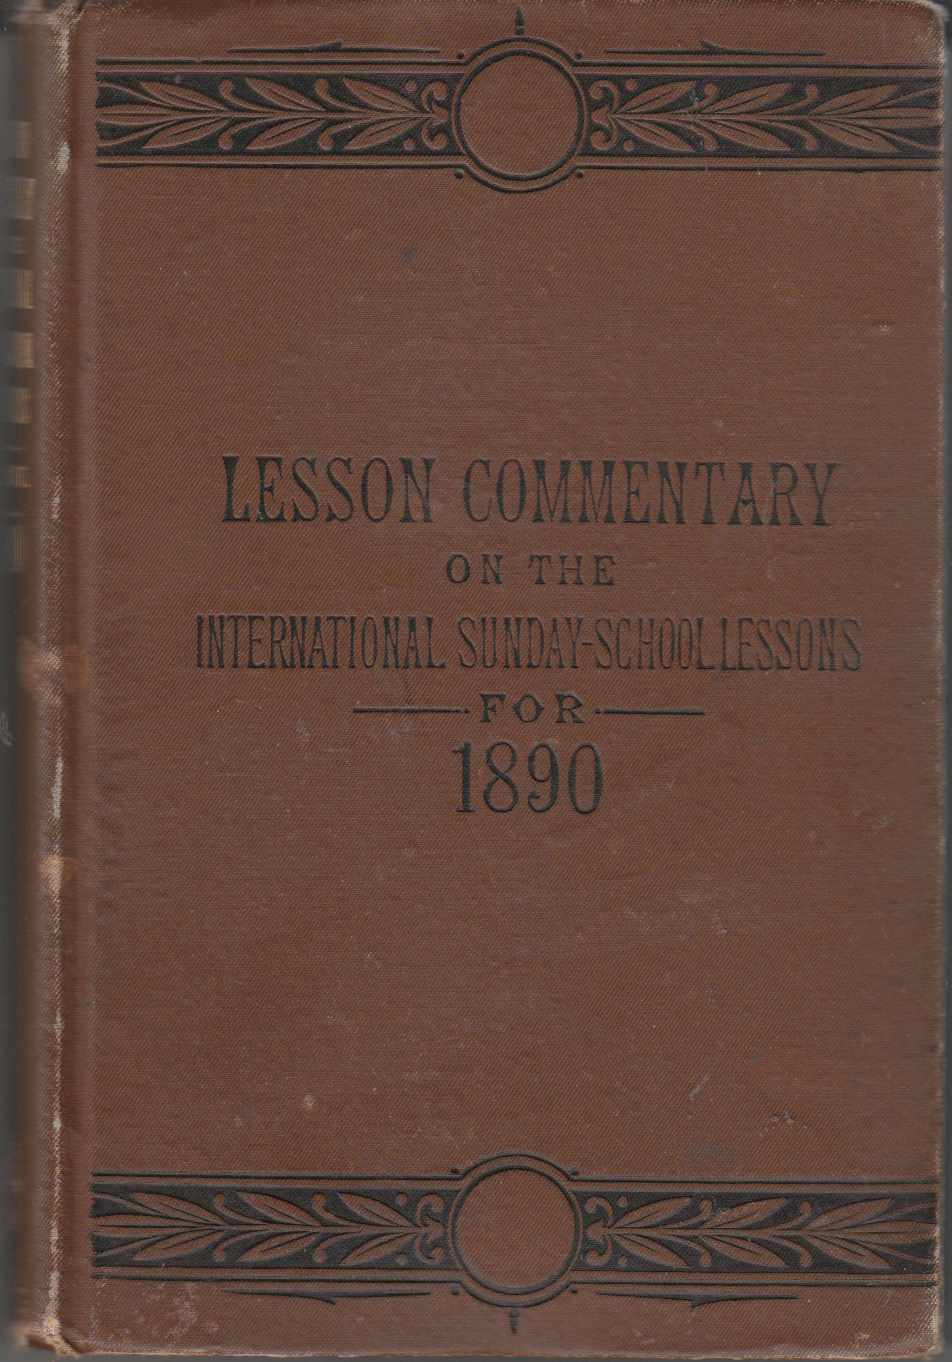 Image for The Lesson Commentary on the International Sunday-School Lesssons for 1890